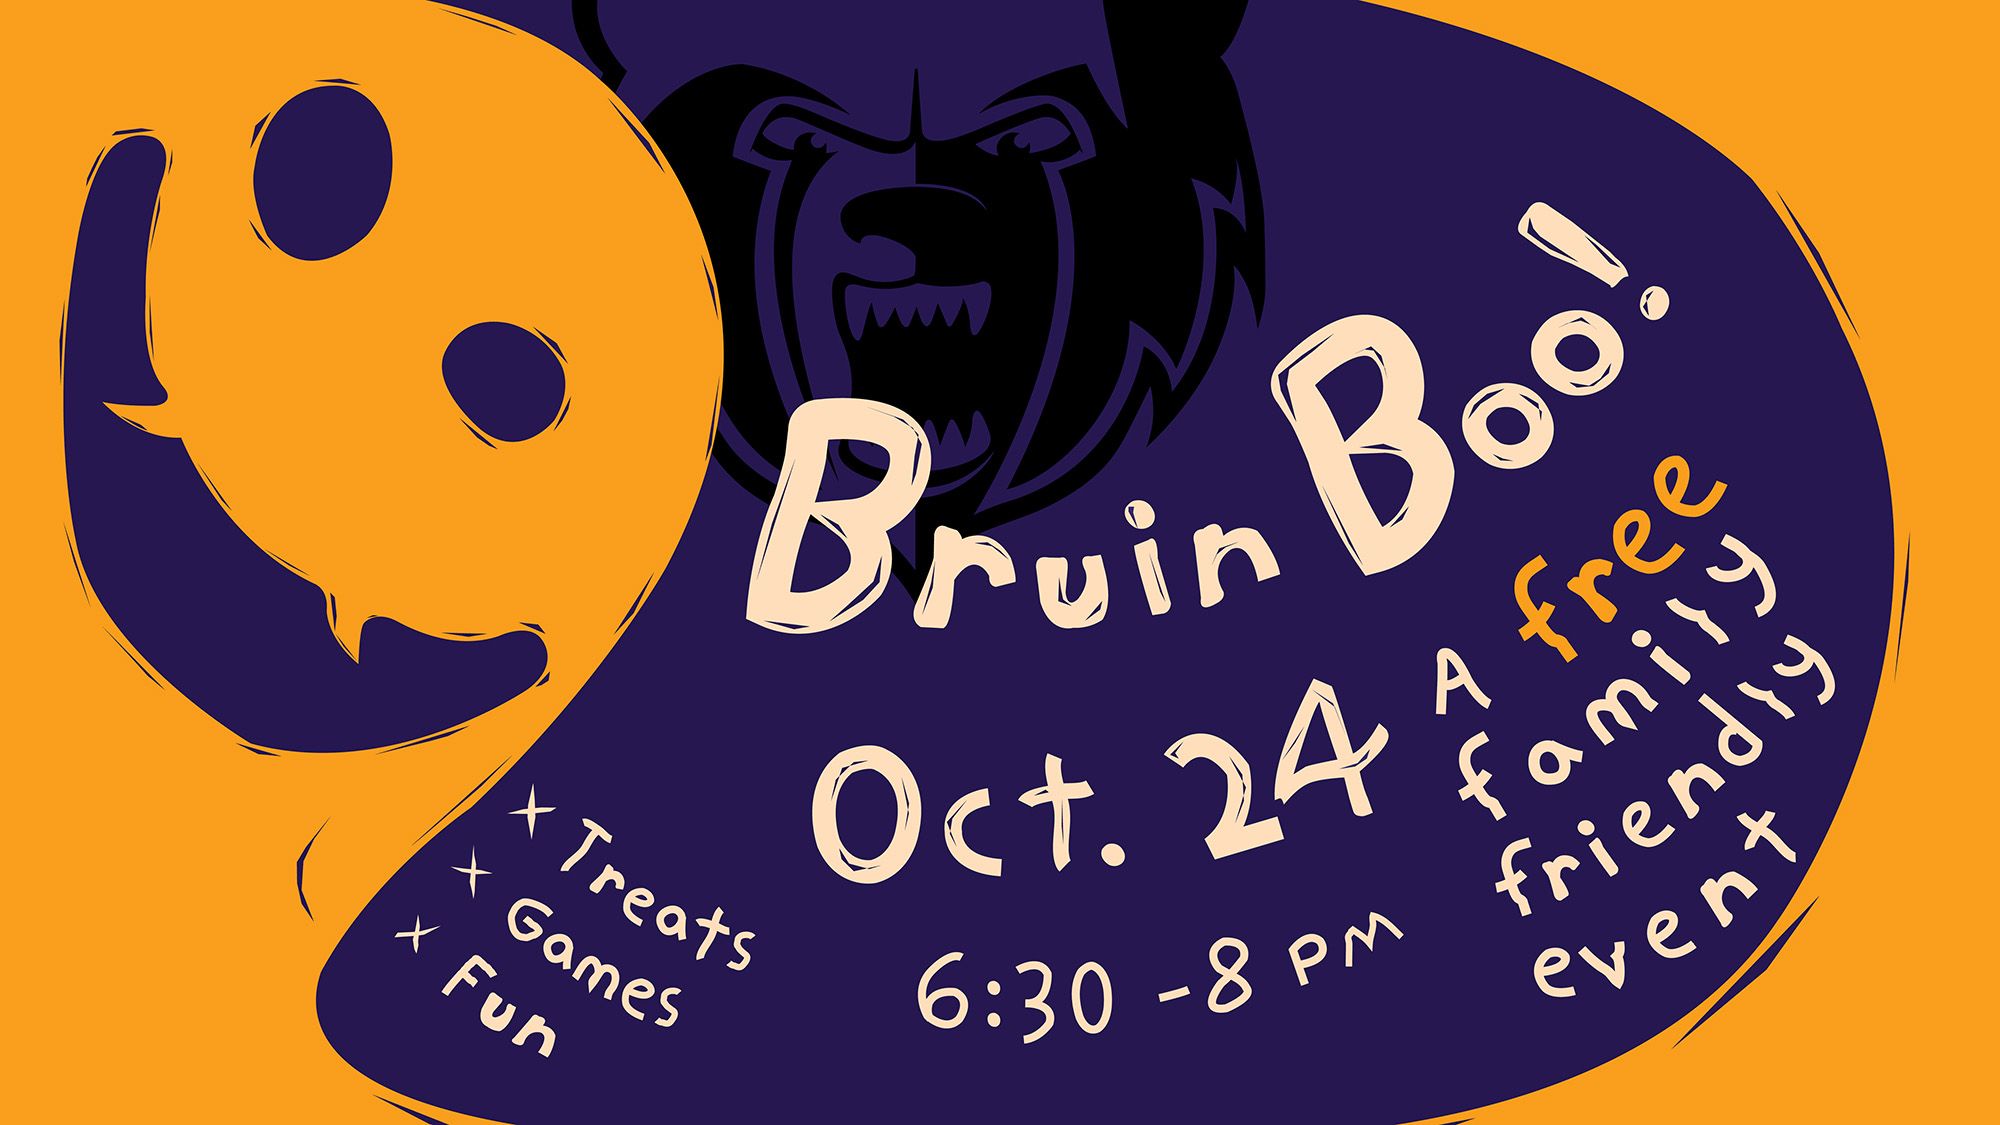 A decorative text slide featuring an orange ghost on a purple background and information about KCC's Oct. 24 Bruin Boo event.